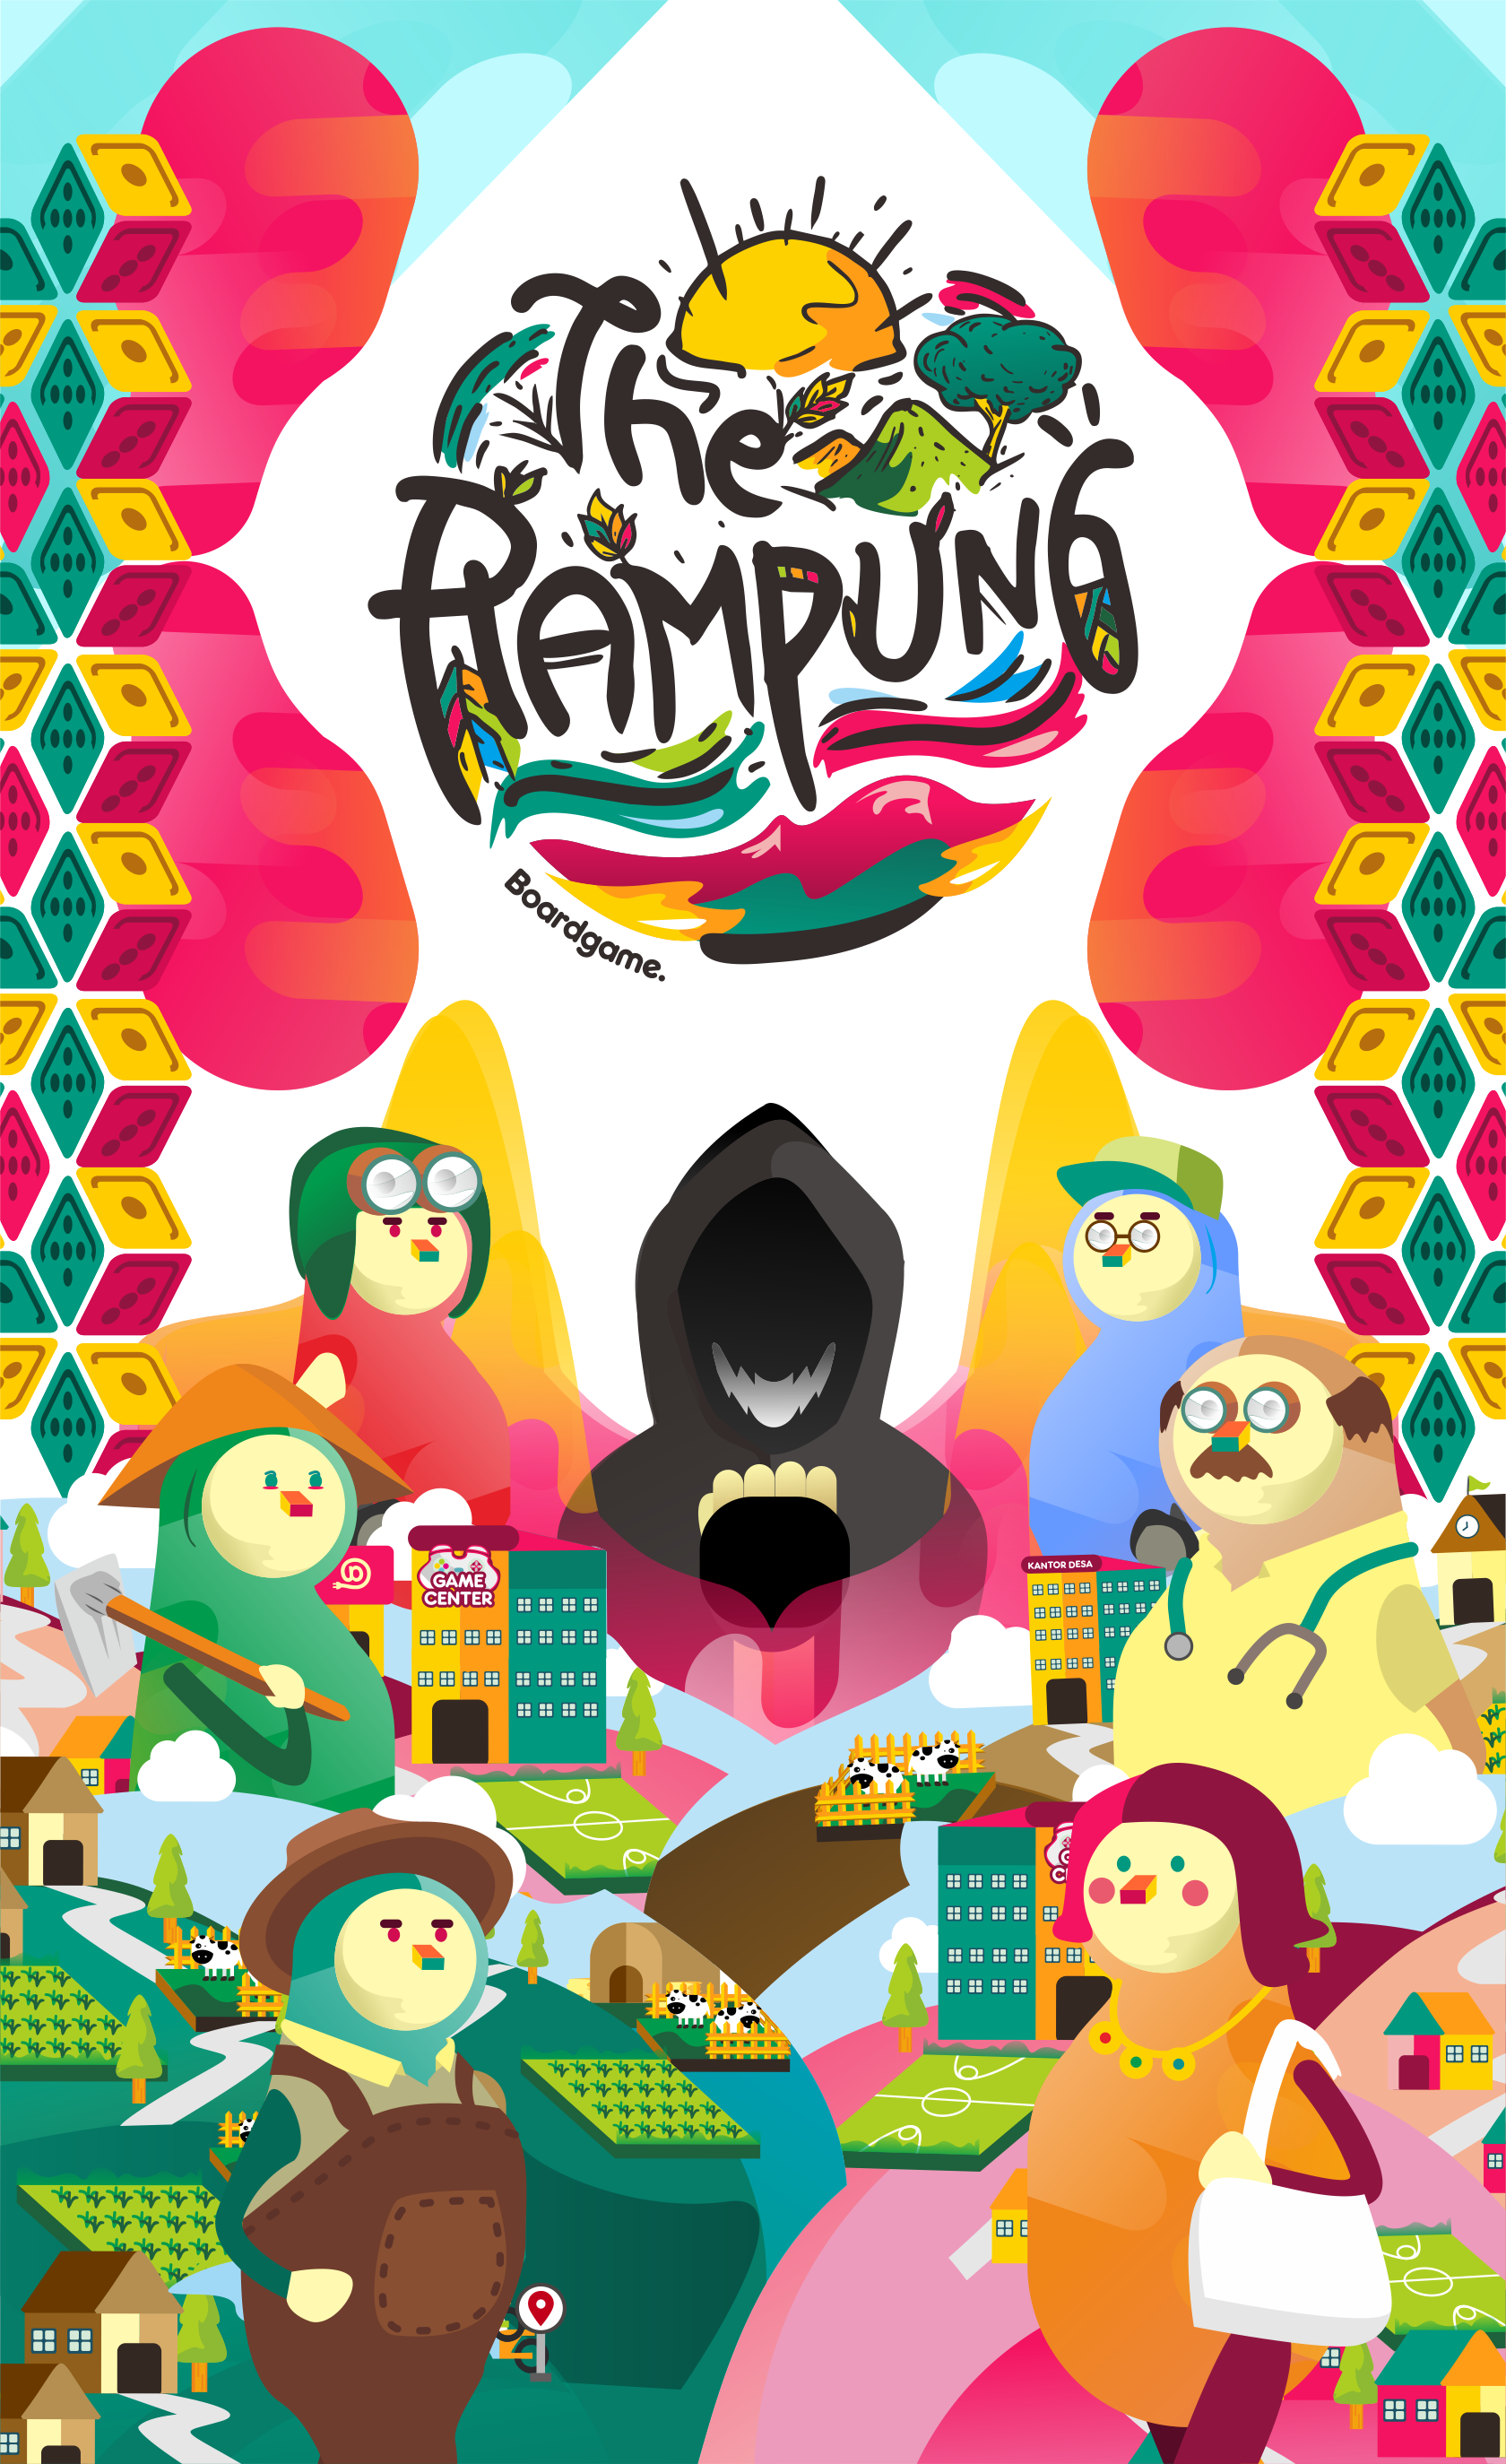 Cover - The Rampung